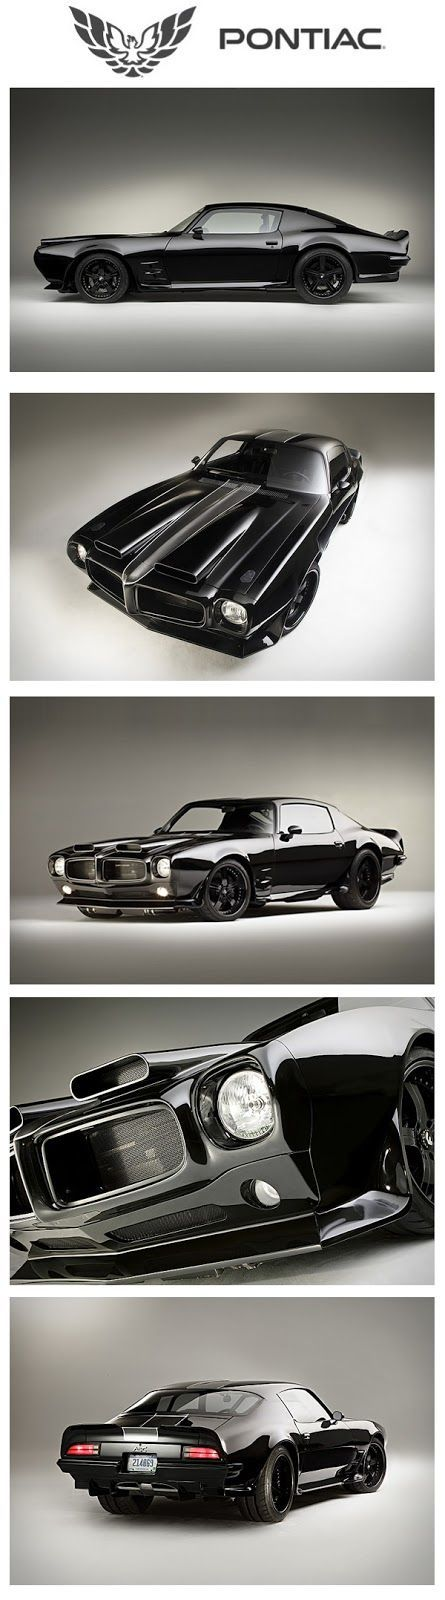 Iconic '70 Pontiac Firebird – click on the image, leave a review and you could win 100 #Car accessory #Cars #Cars and such is creative inspiration for us. Get more photo about Cars and Motorcycles related with by looking at photos gallery at the bottom of this page. We are want to say thanks if